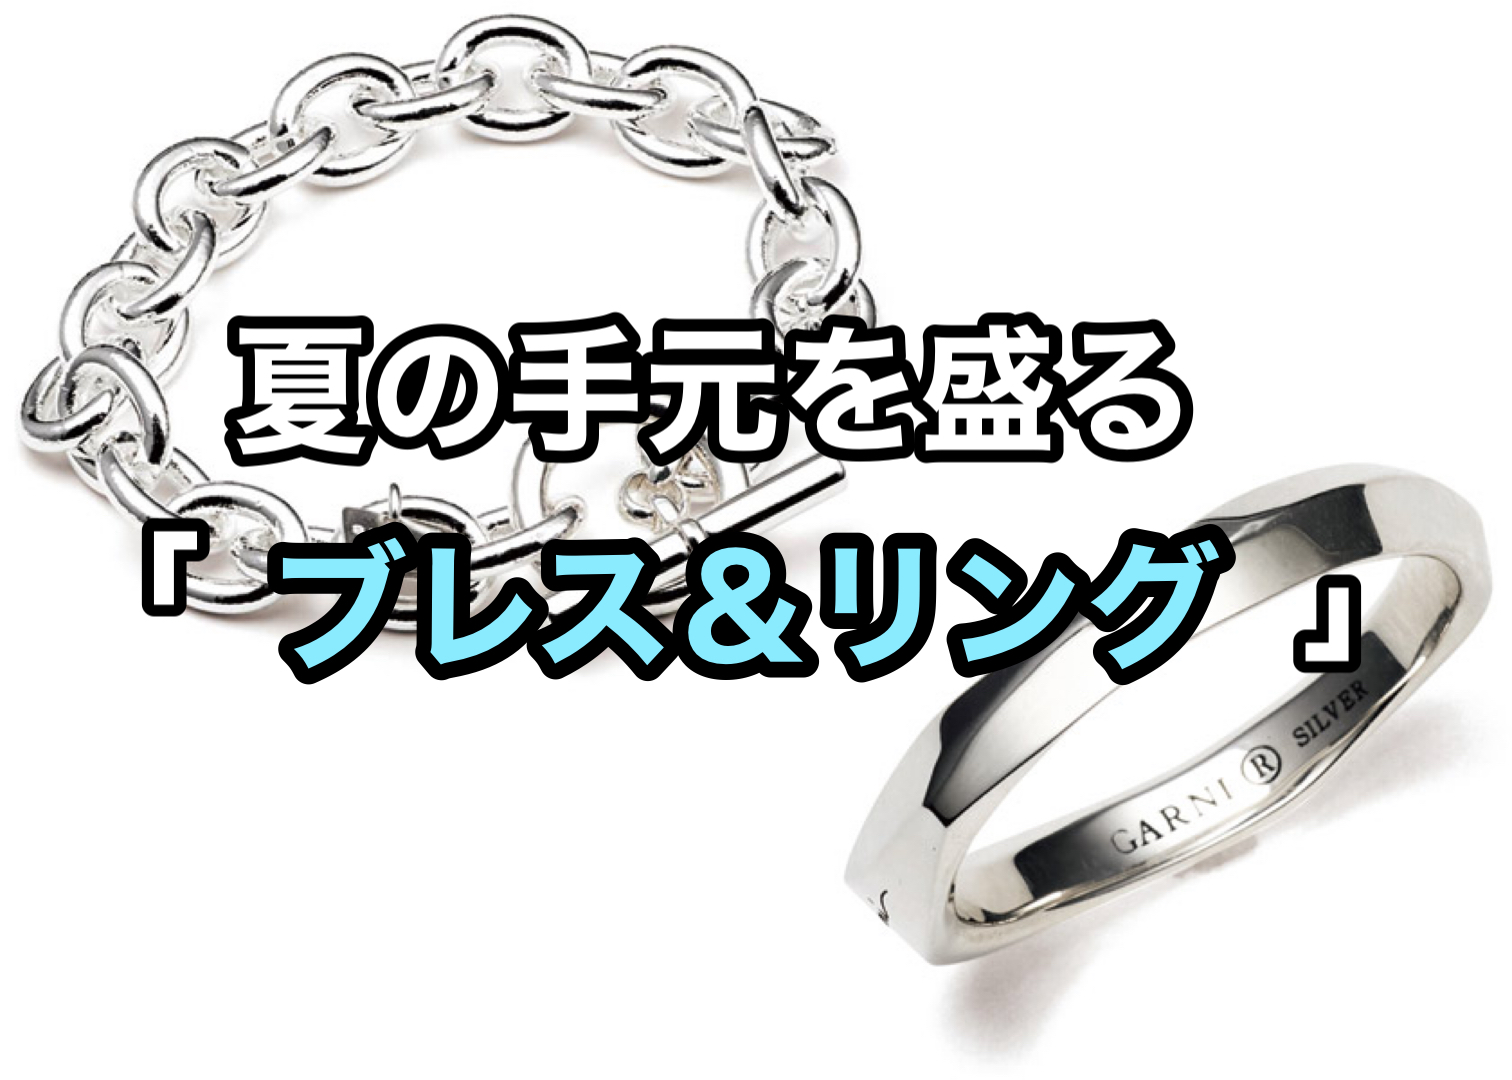 https://fineboys-online.jp/thegear/content/theme/img/org/article/3471/main.jpg?t=1625033647